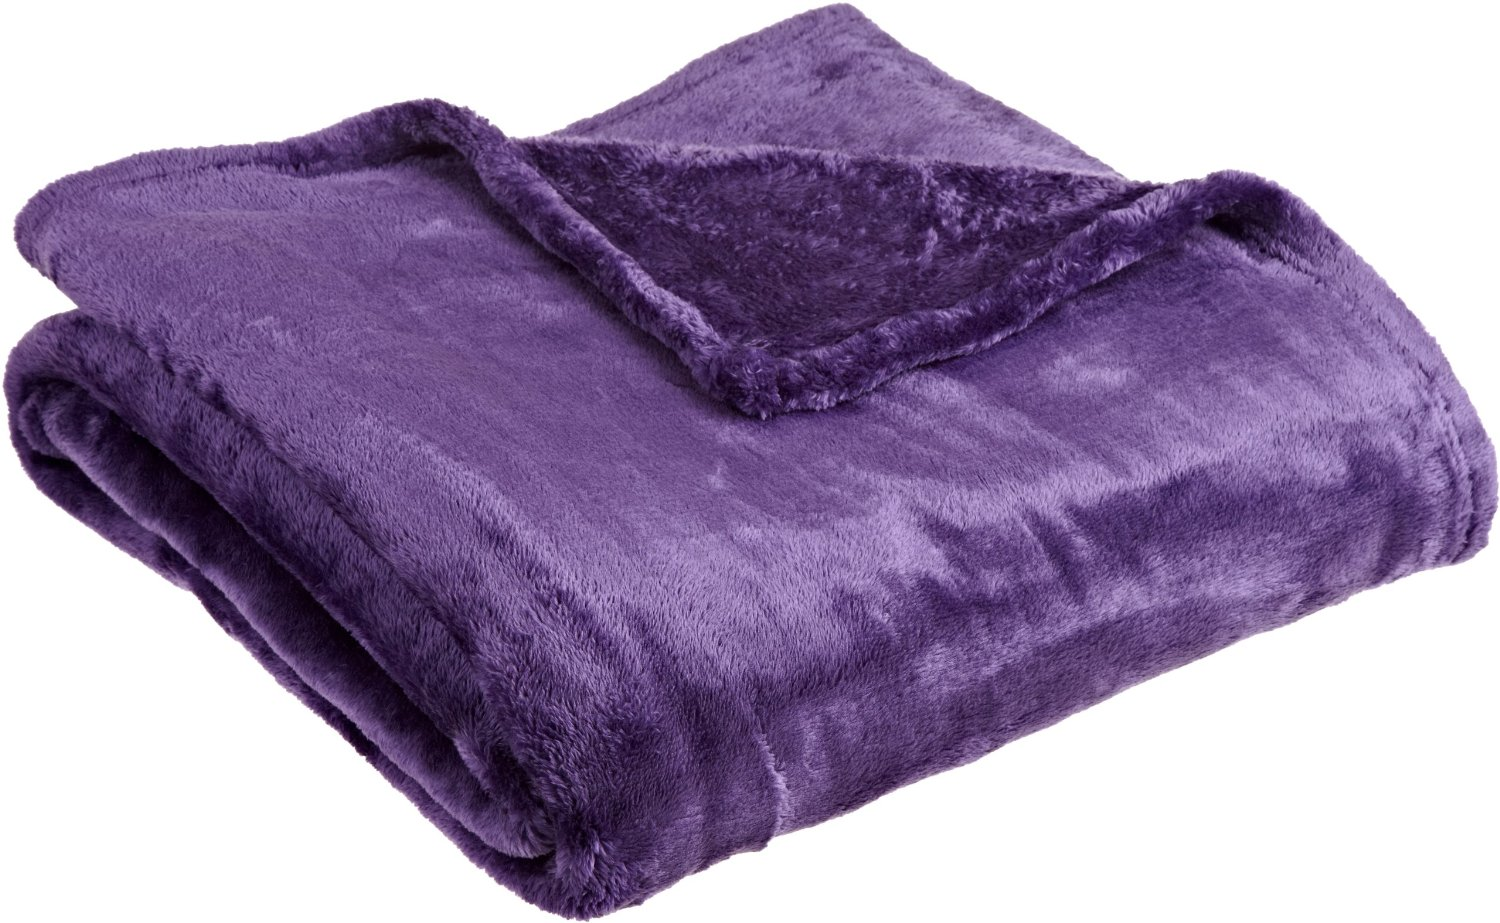 com - Northpoint Cashmere Plush Velvet Throw, Purple - Throw Blankets